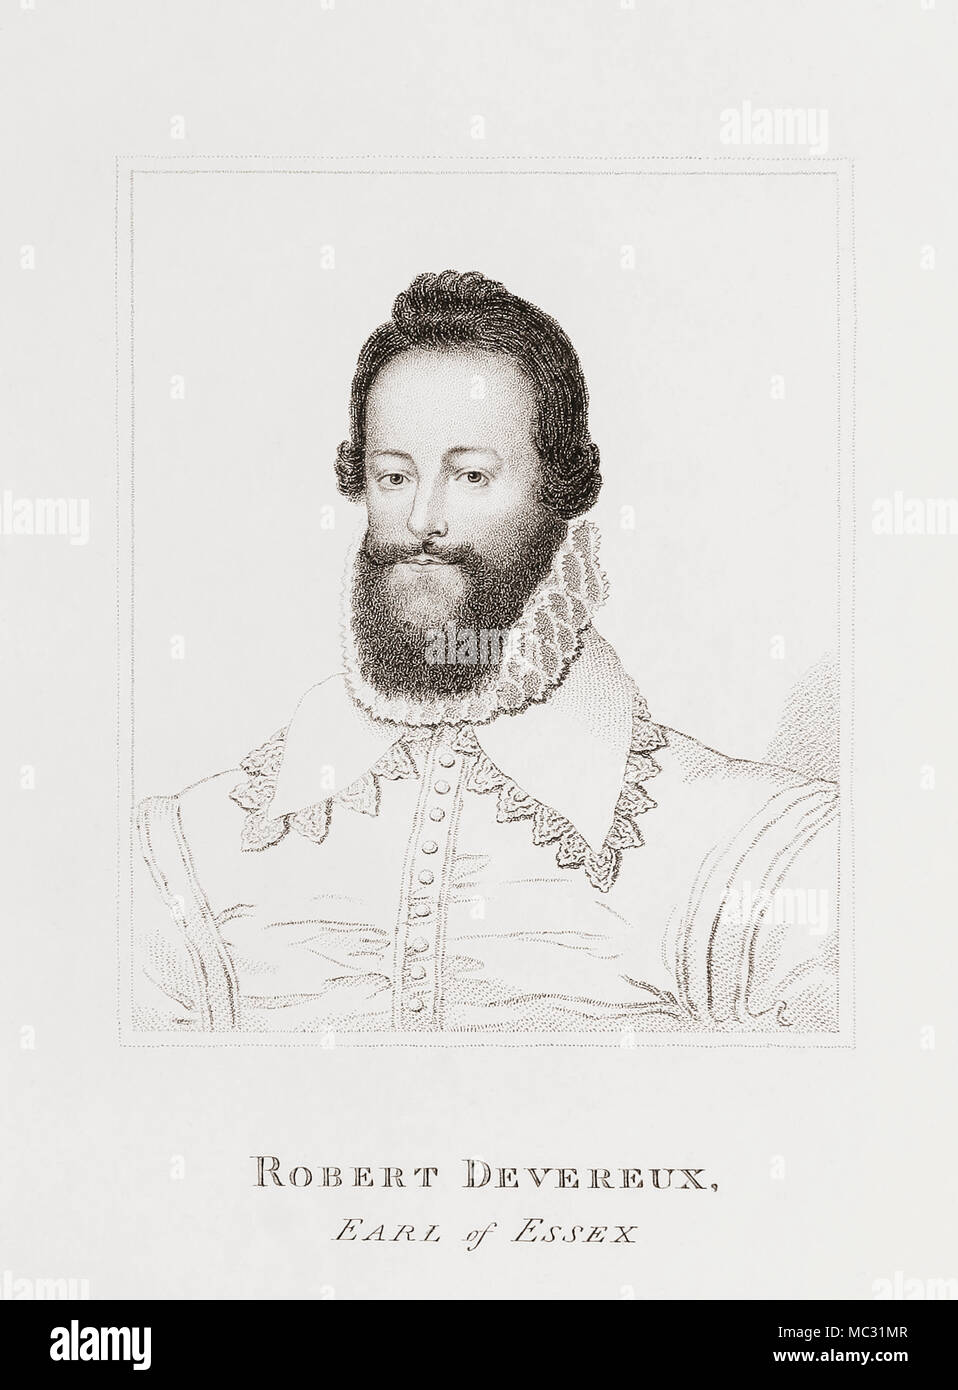 Robert Devereux, 2nd Earl of Essex, 1565-1601.  English nobleman and a favourite of Elizabeth I.  From Woodburn's Gallery of Rare Portraits, published 1816. - Stock Image